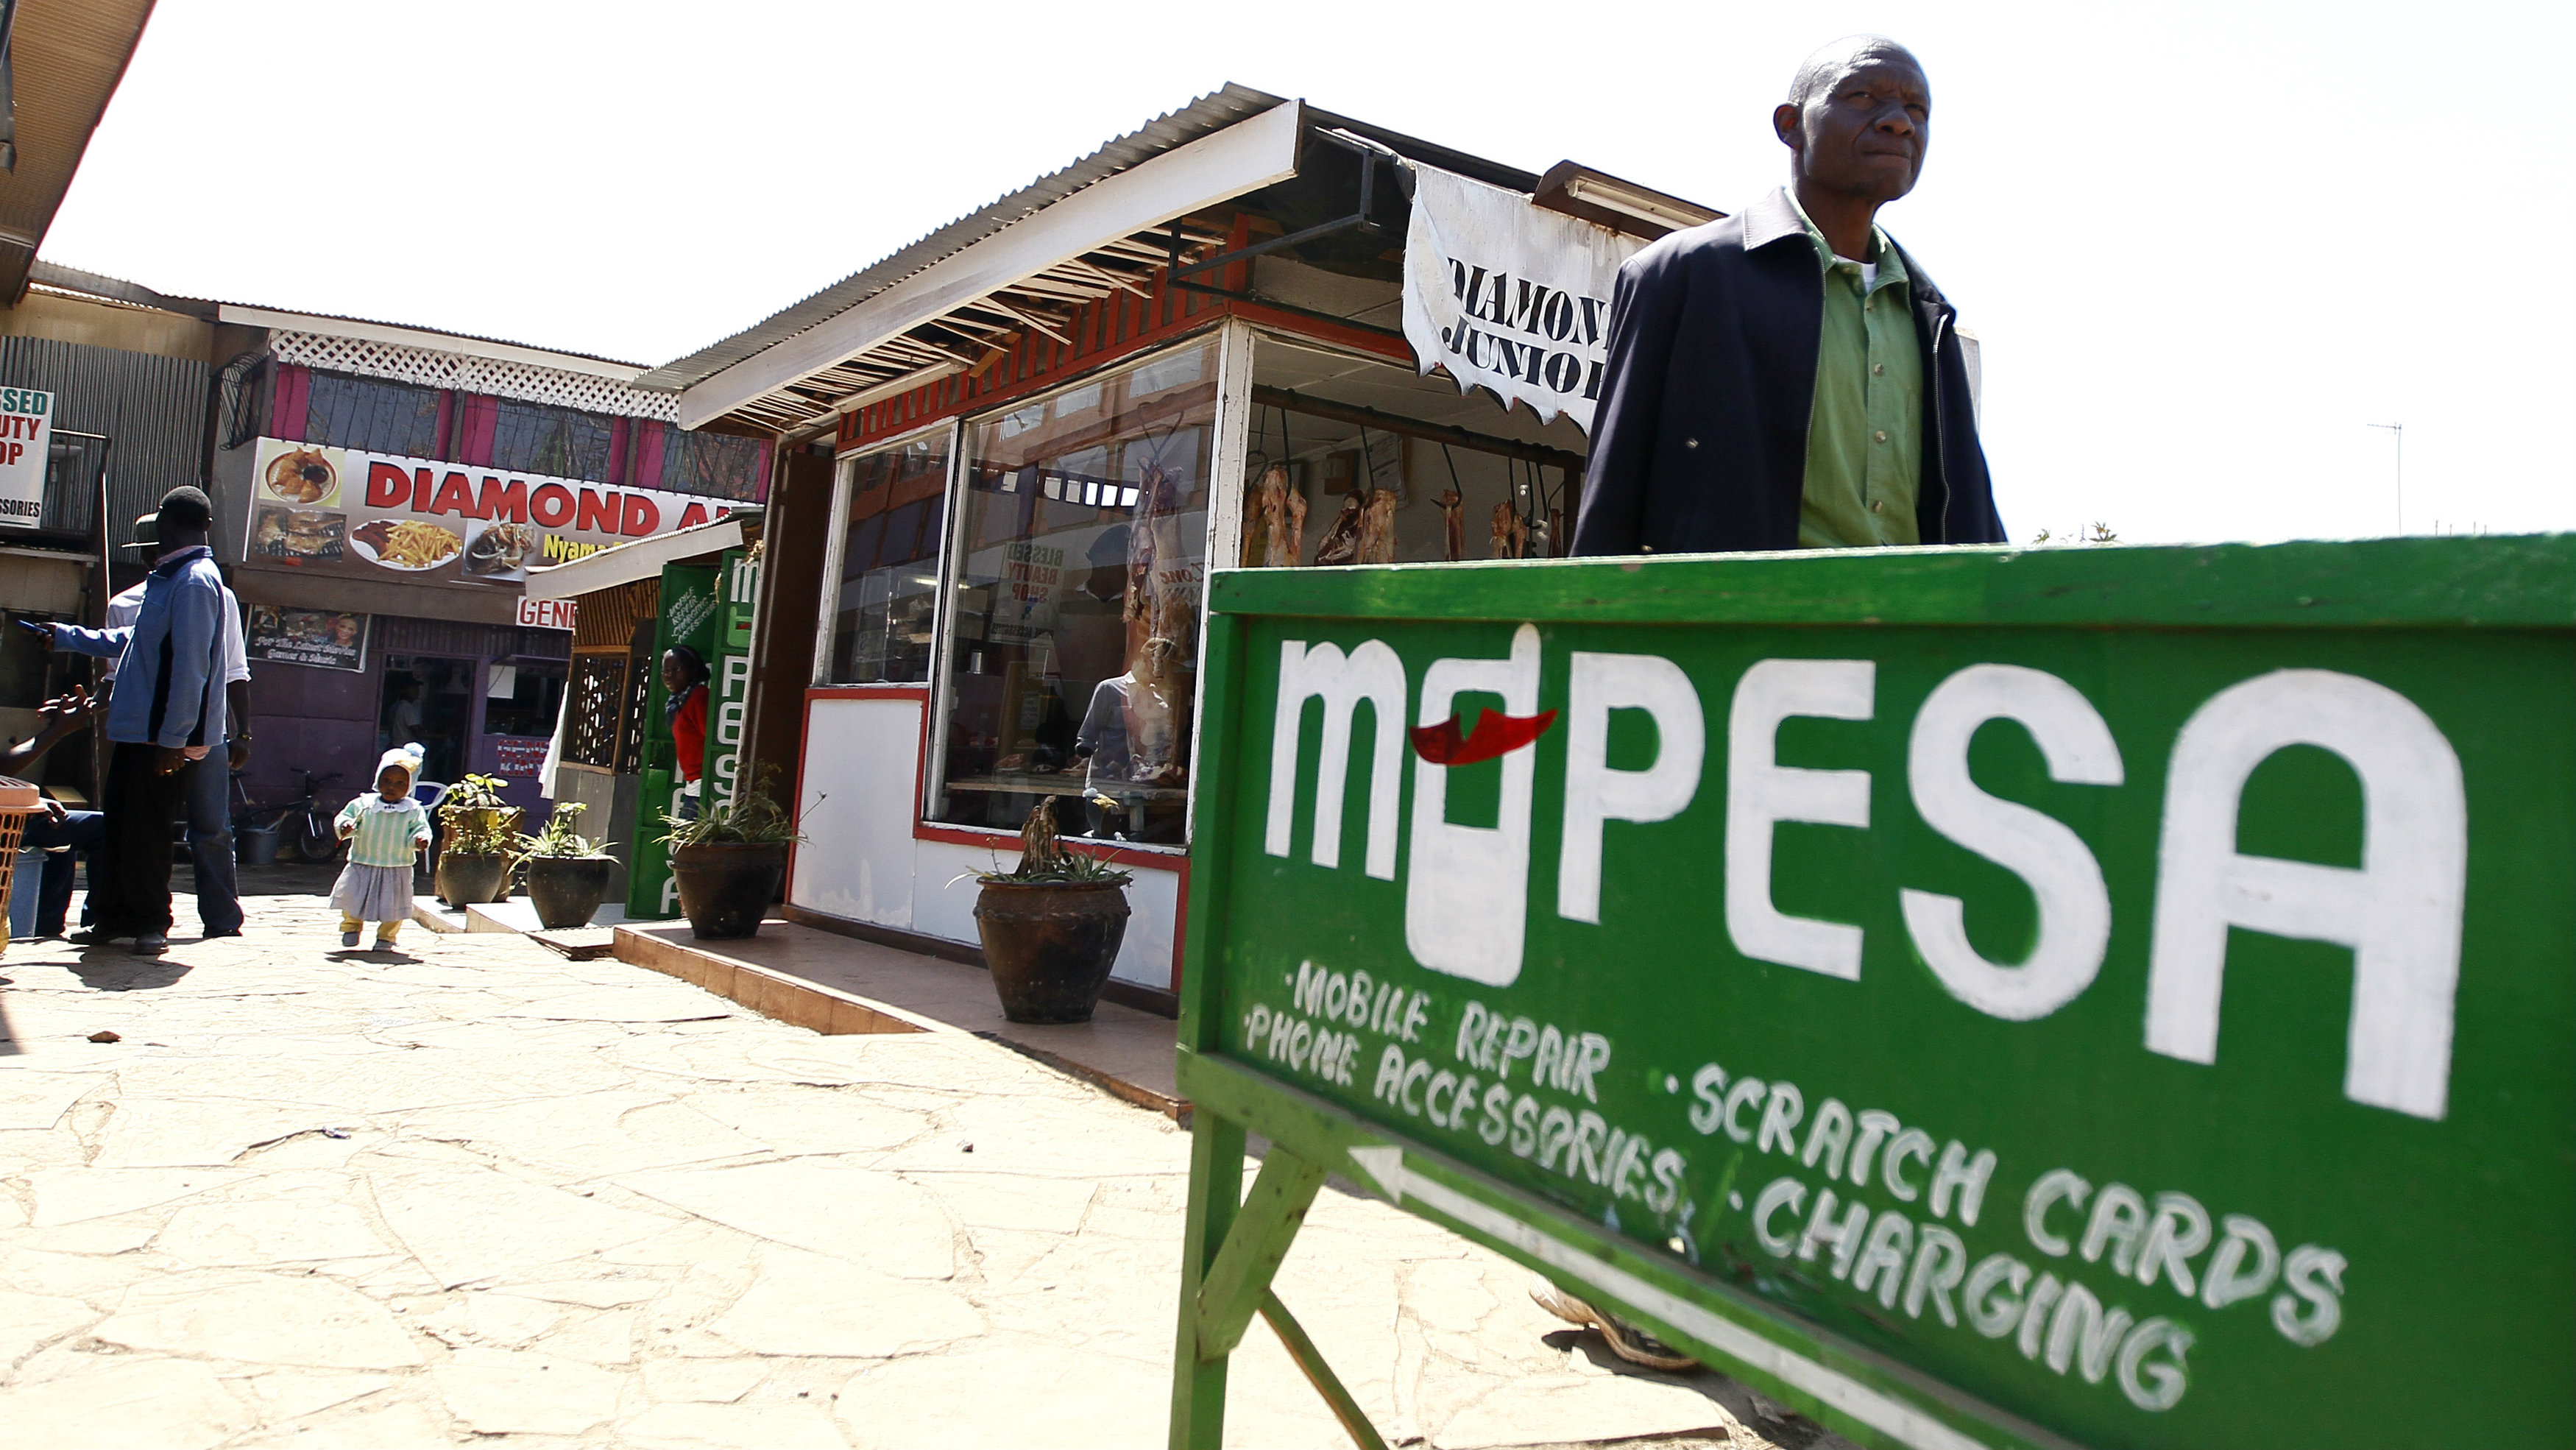 A man walks away from a retail mobile money transfer shop in Ngong township in the outskirts of Kenya's capital Nairobi July 15, 2013.